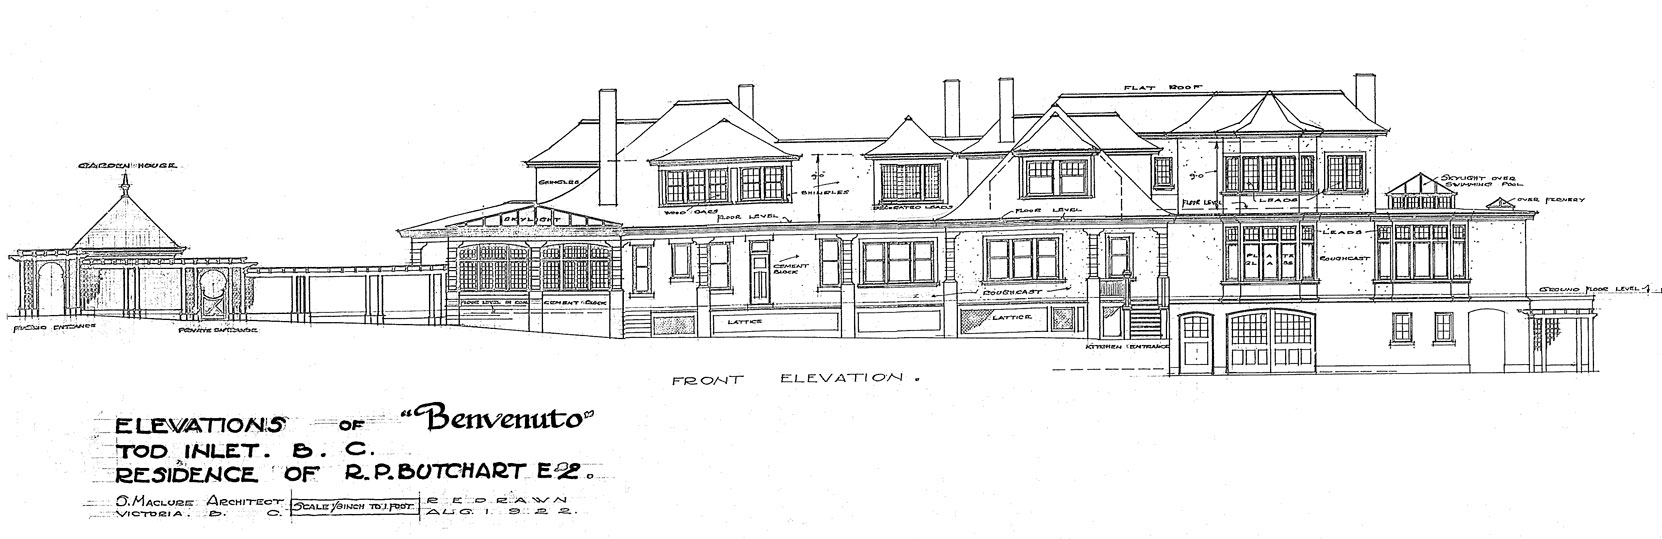 Samuel Maclure drawing of front (south) elevation of Benvento, 1922 (courtesy of UVic Library - Special Collections)